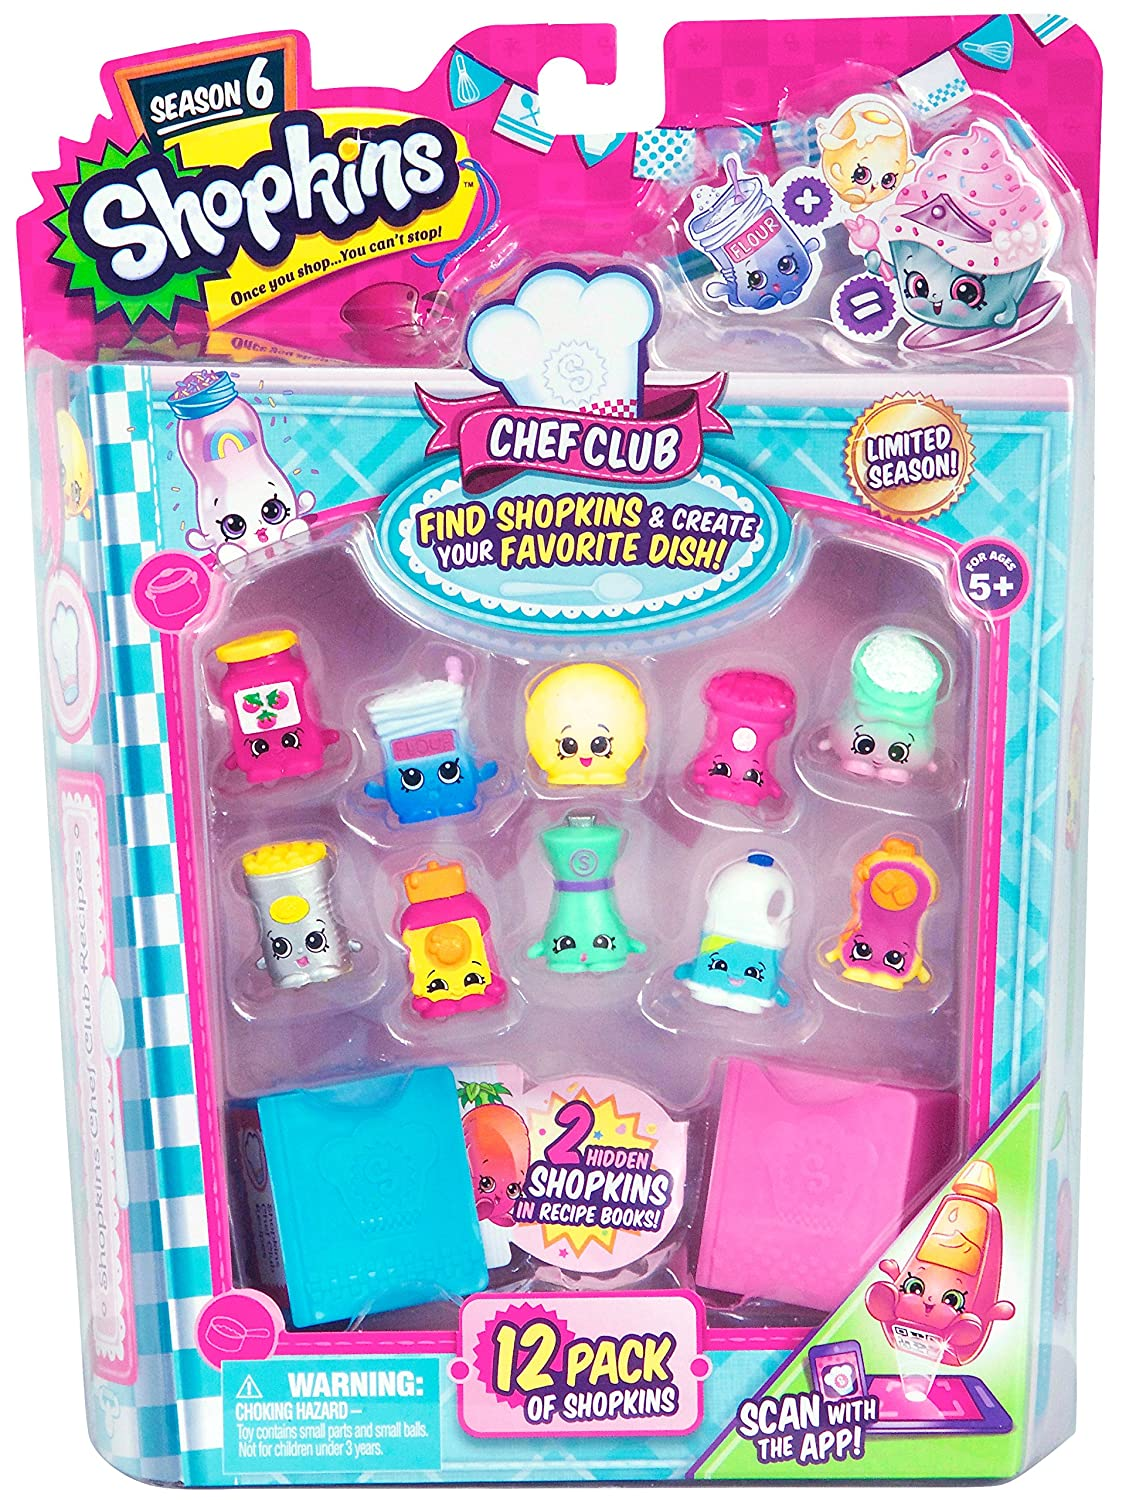 Shopkins Season 6 Chef Club Playset 12-Pack Moose Toys 56144